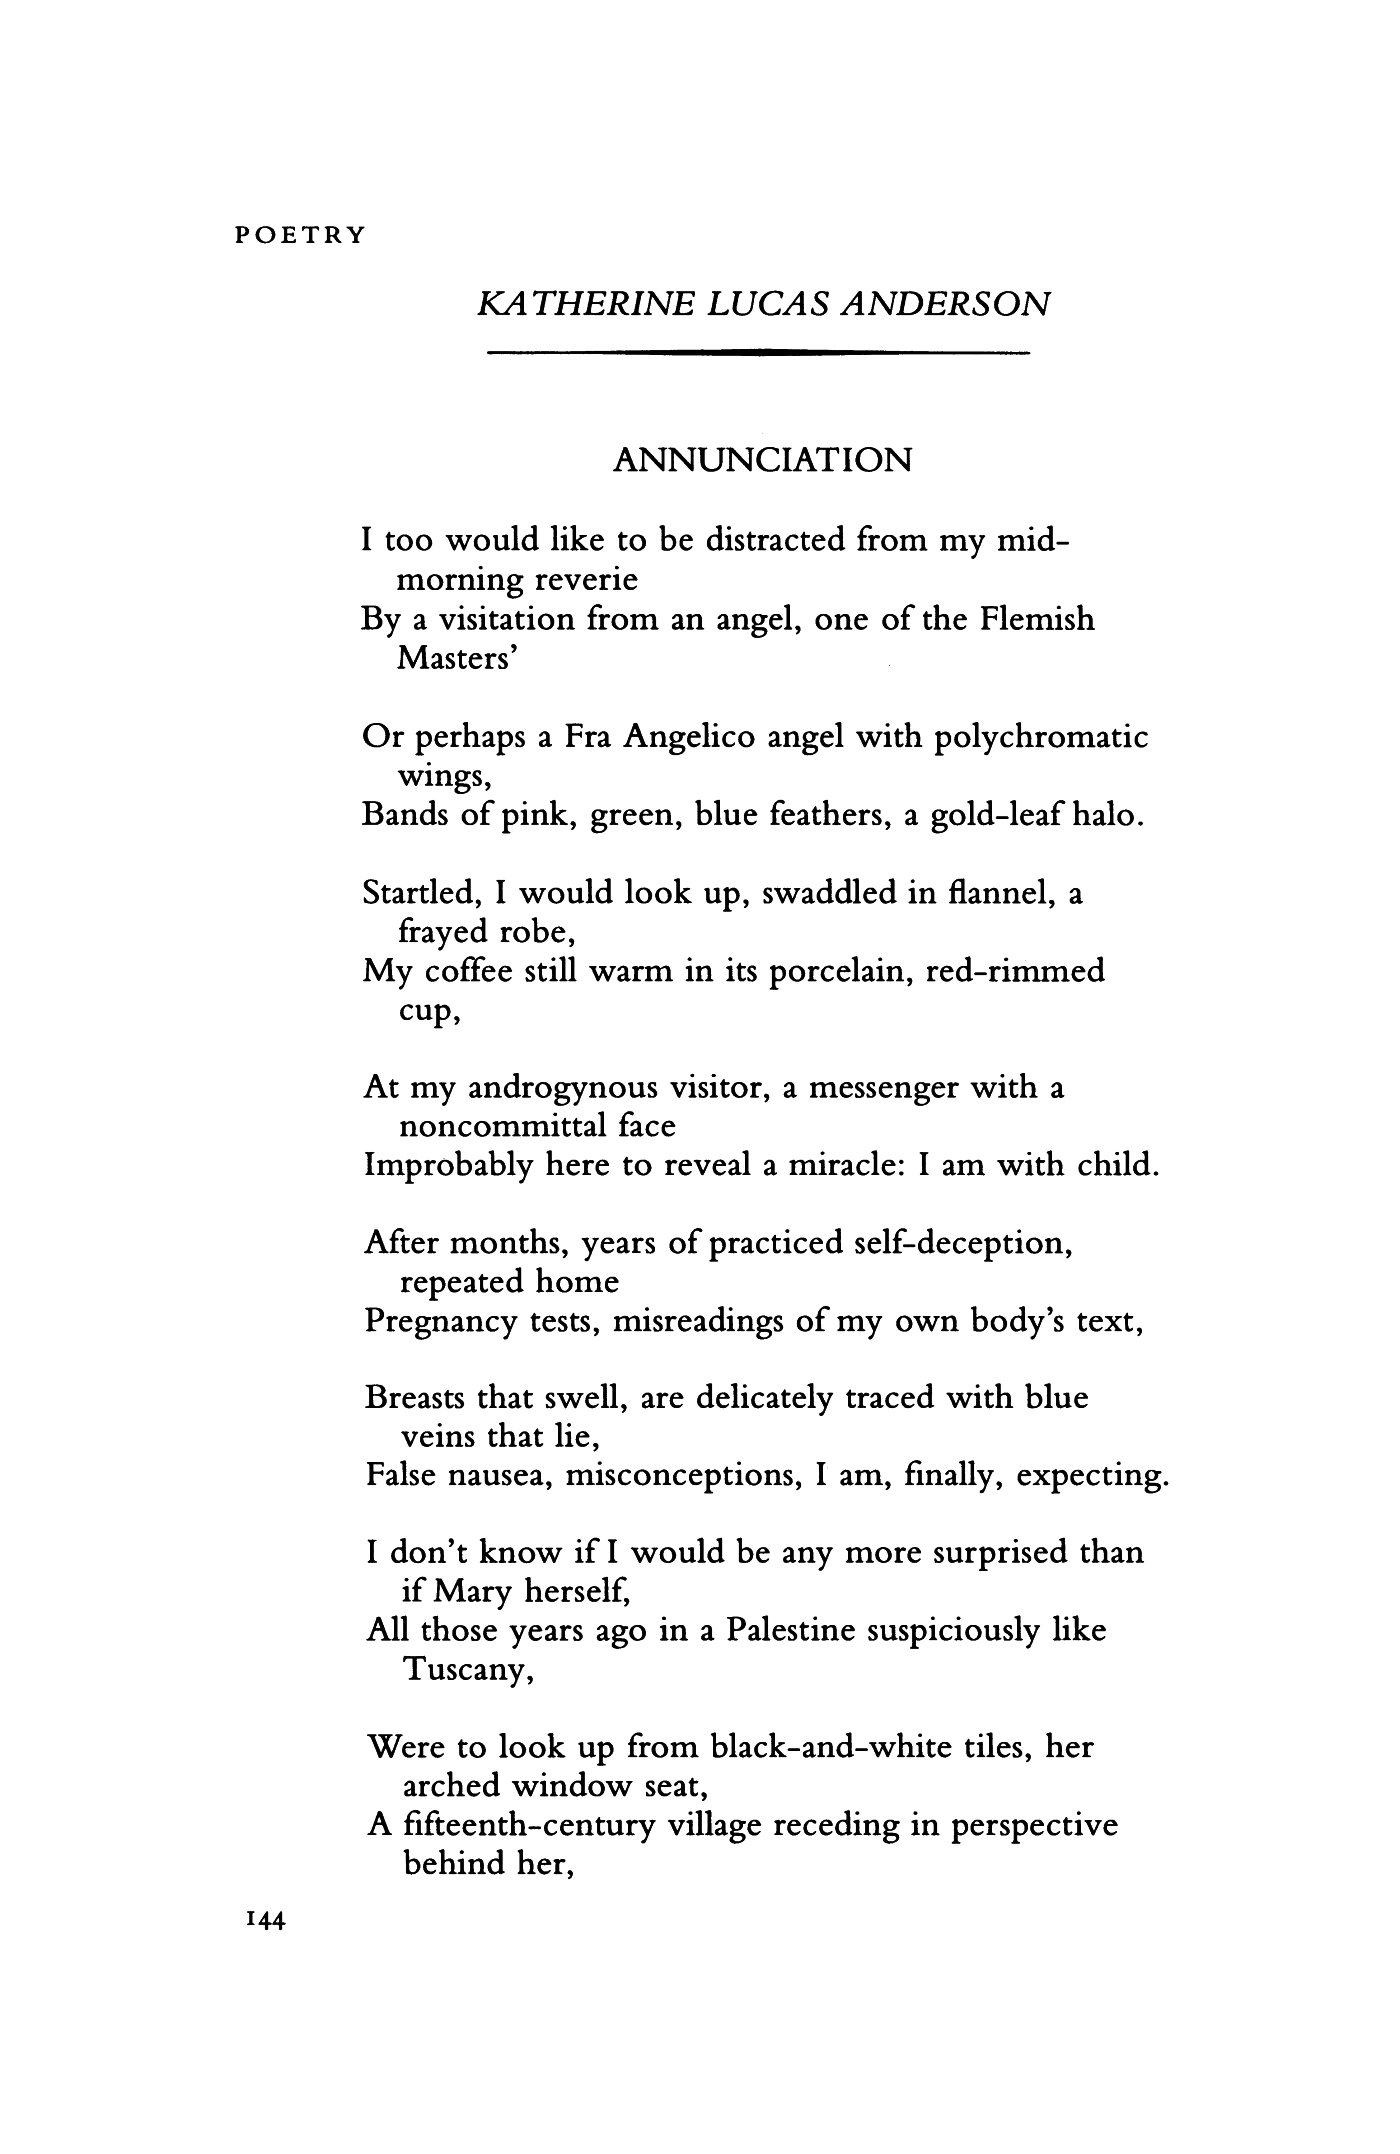 ANNUNCIATION by Katherine Lucas Anderson | Poetry Magazine